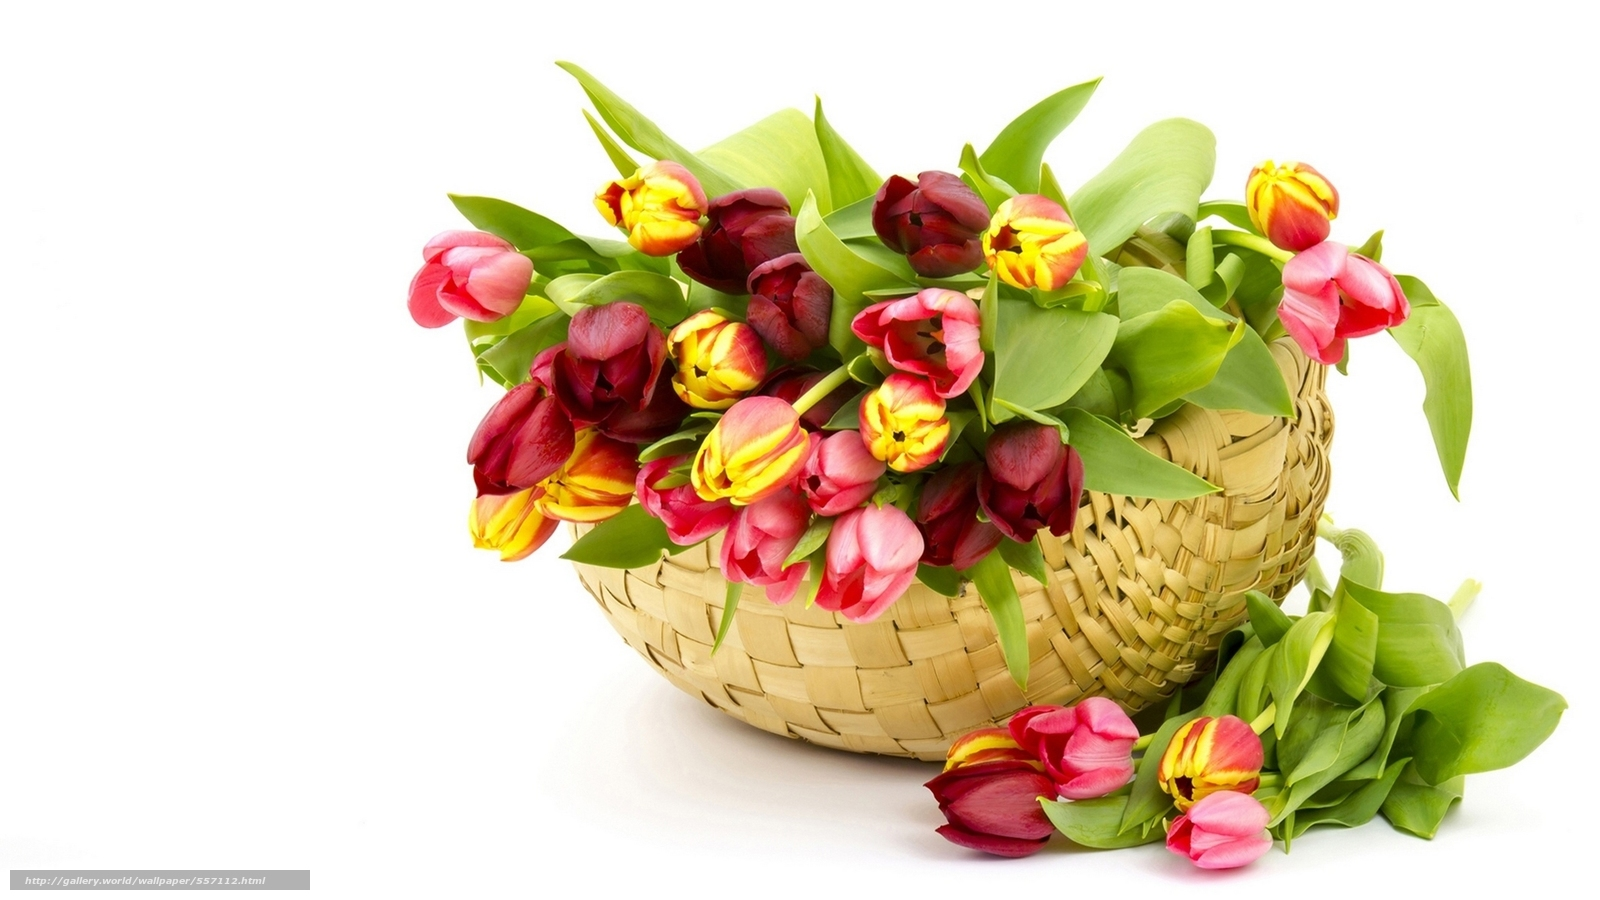 nature, flowers, Flower, basket, Tulips